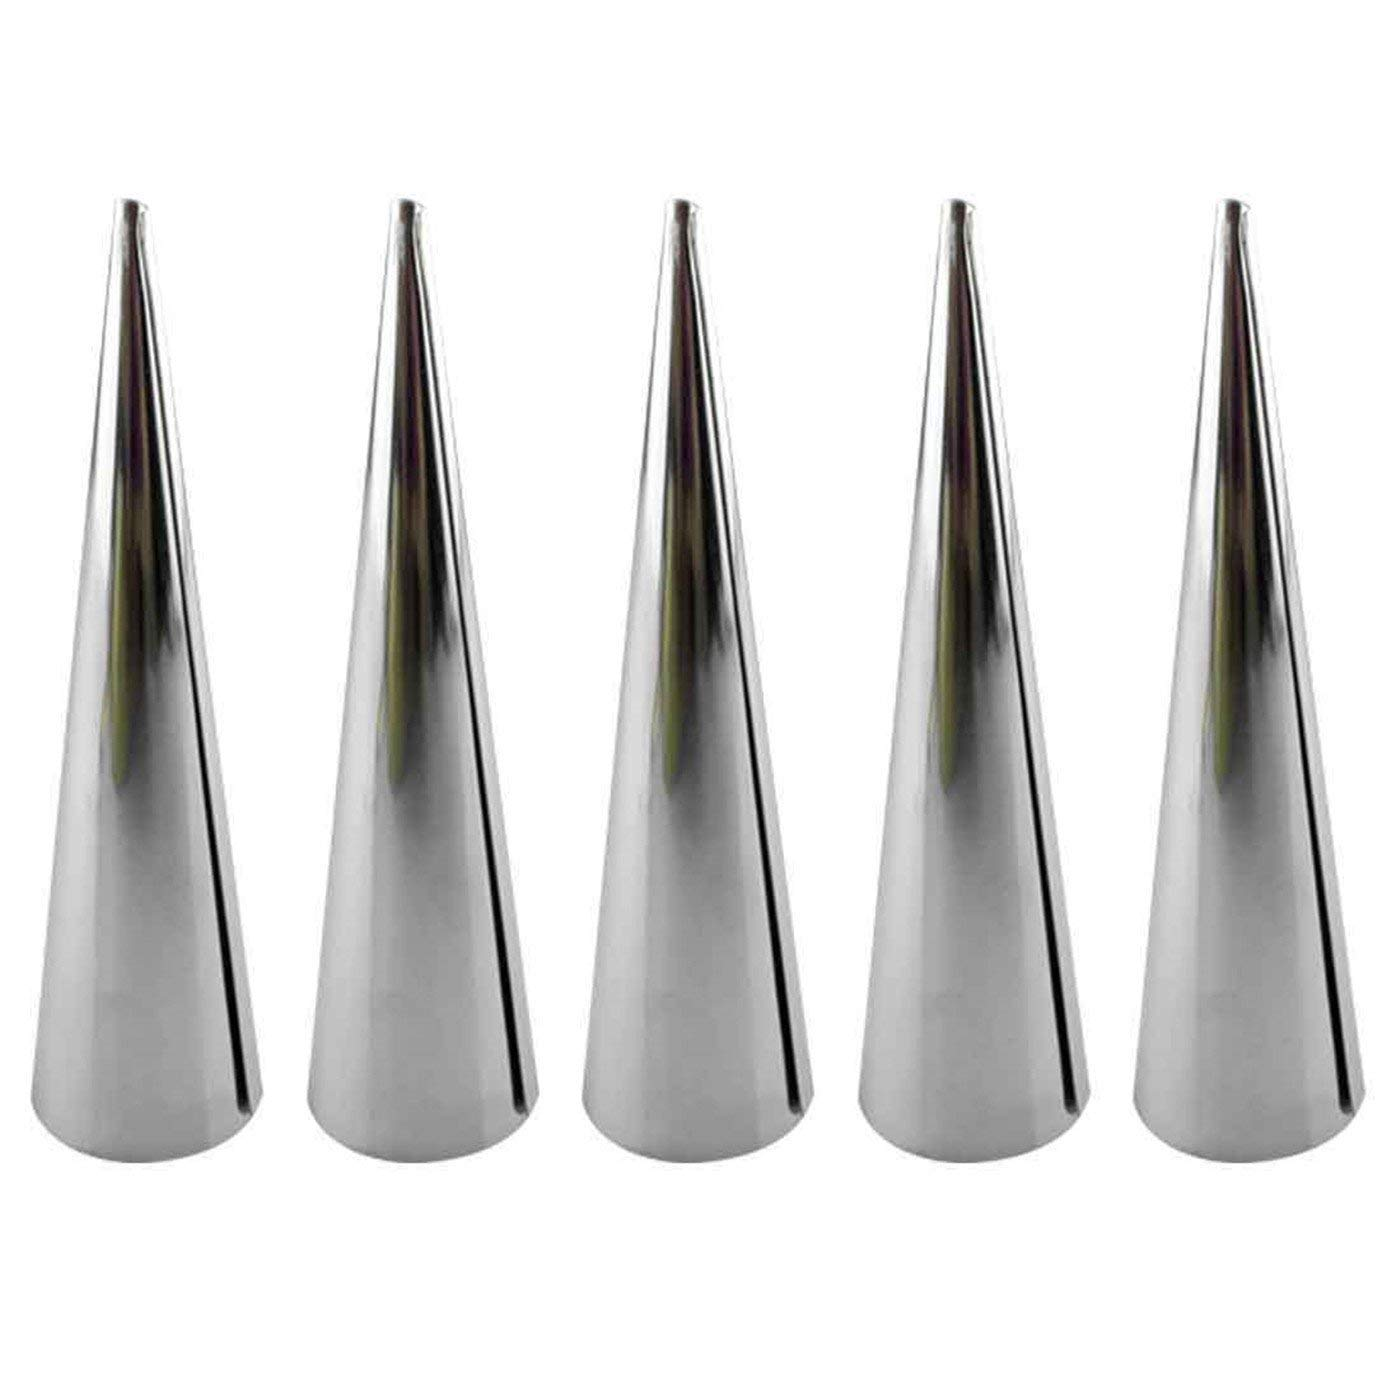 5pcs/lot Baking Cones Stainless Steel Spiral Croissant Tubes Horn bread Pastry making Cake Mold baking supplies (M)